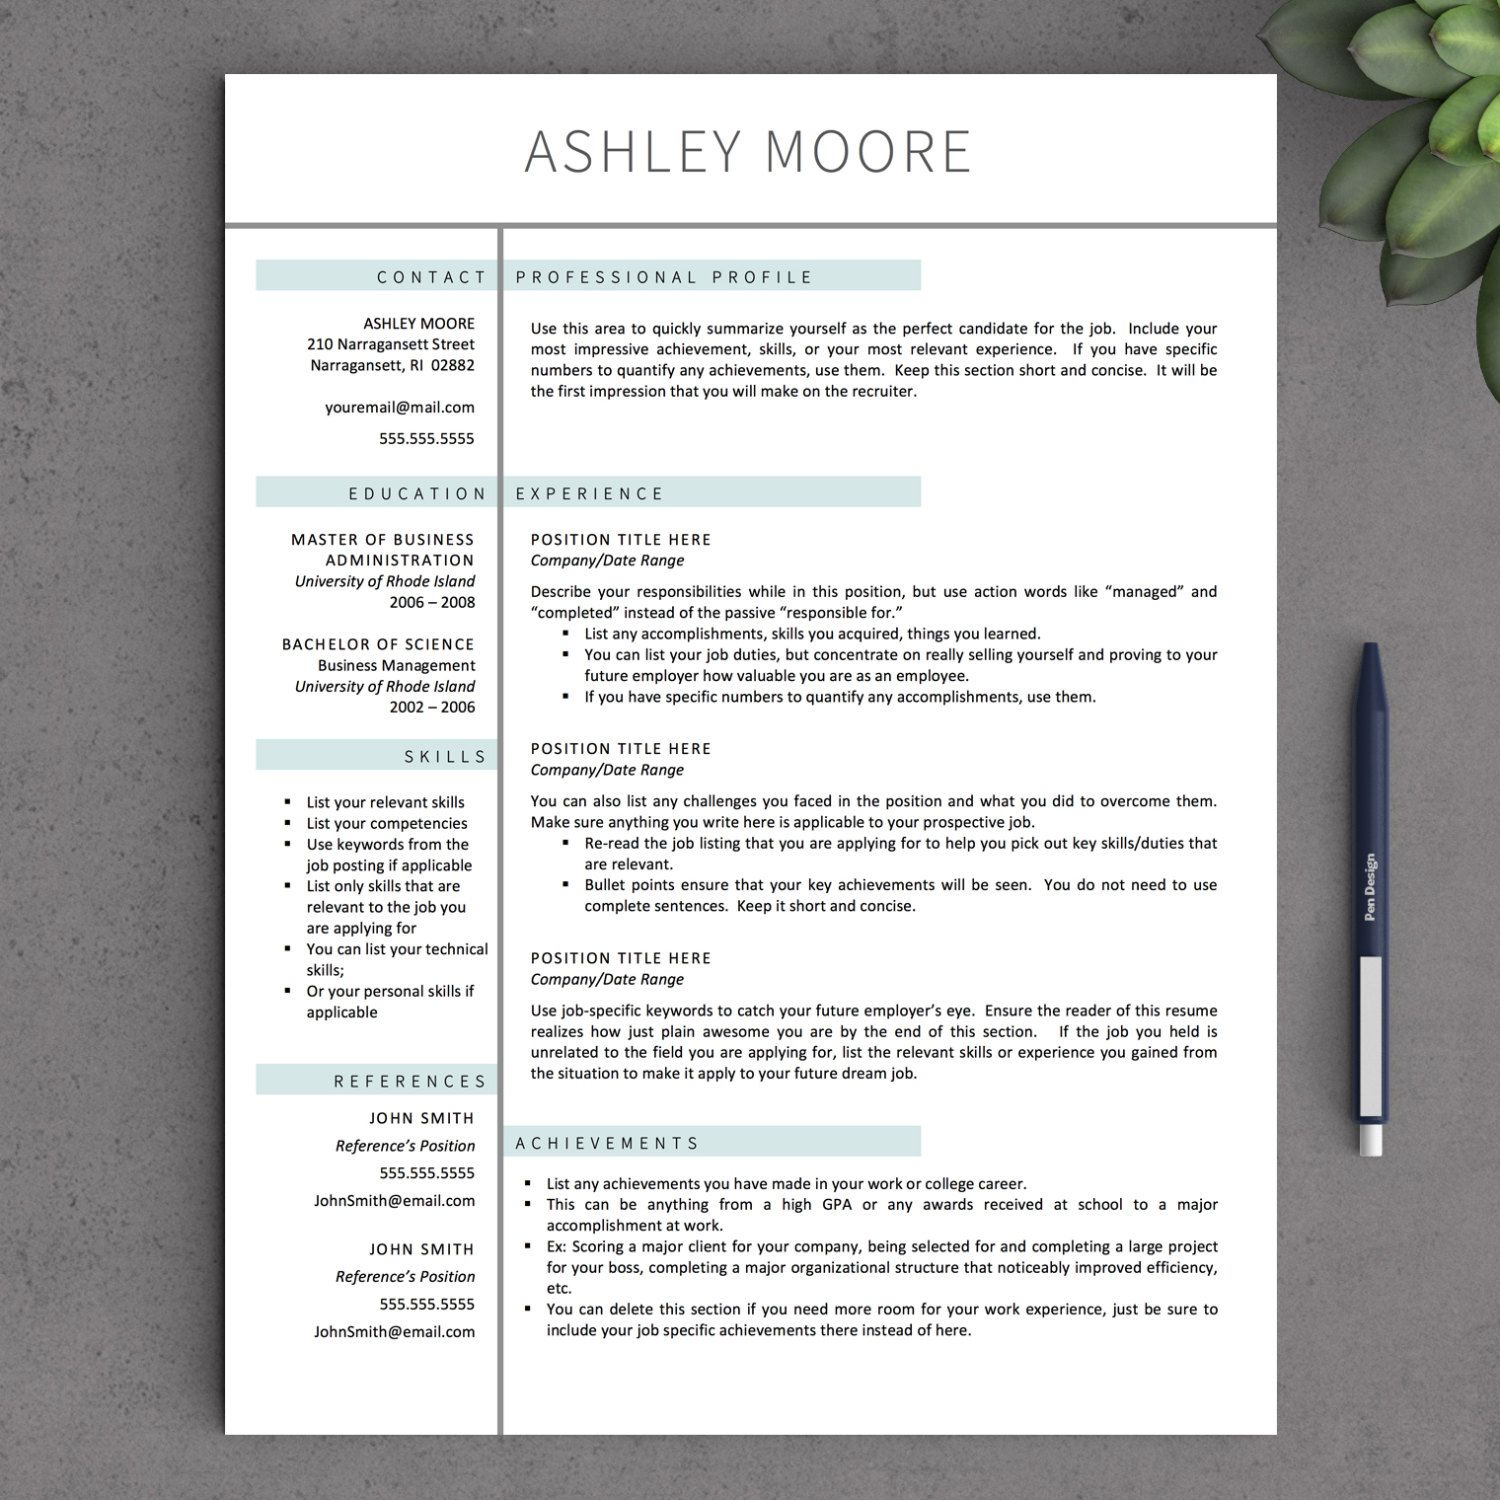 Bon Apple Pages Resume Template Download Apple Pages Resume Template Download,  Appleu2026